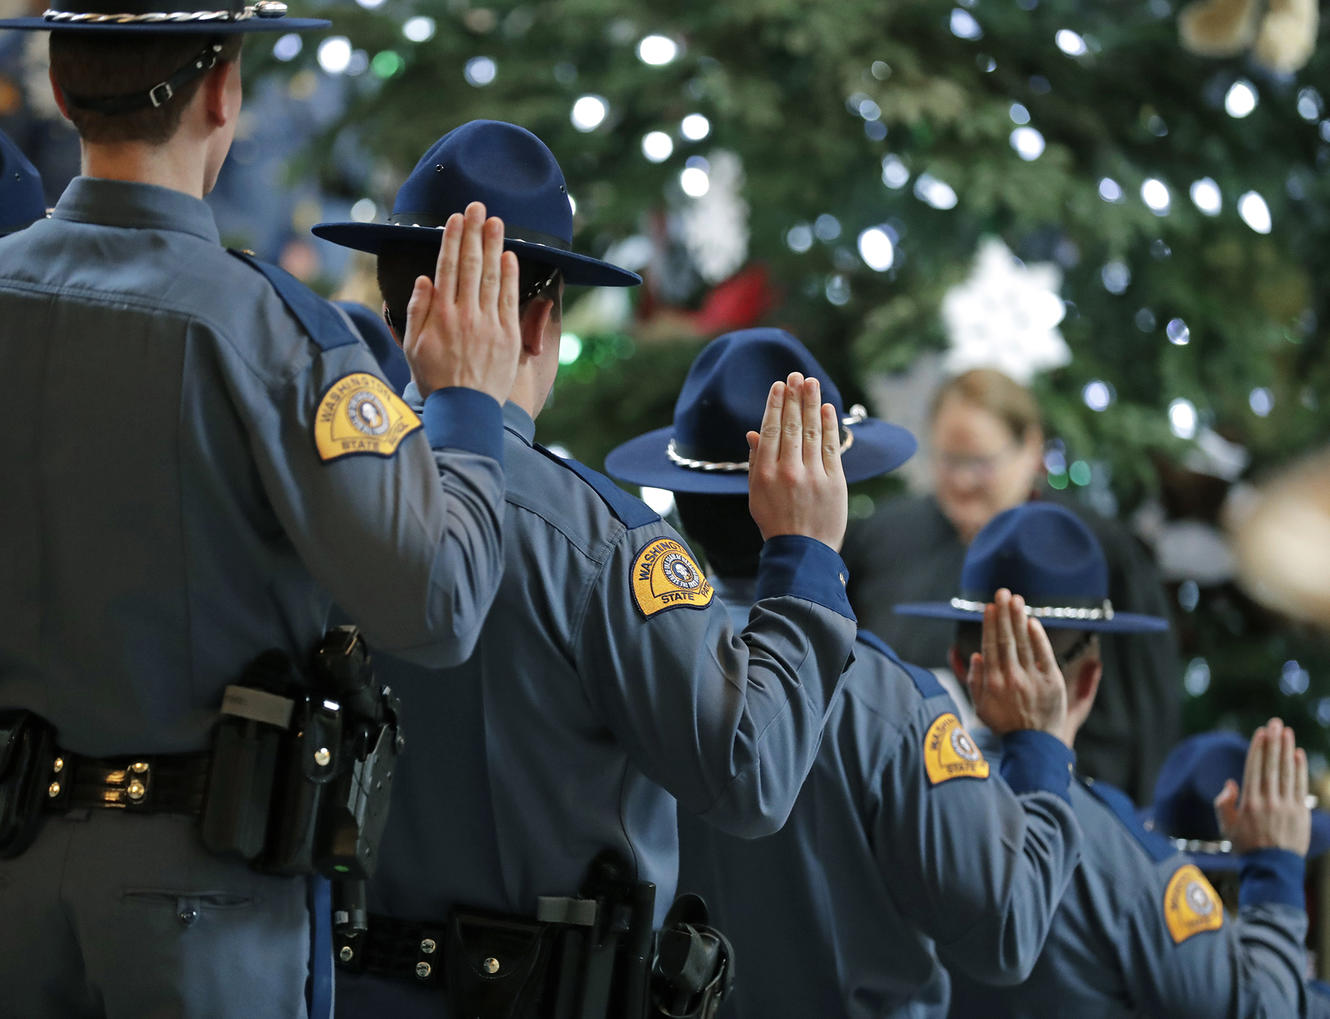 New Washington State Patrol troopers taking part in a graduation ceremony raise their right hands and take the Oath of Office, Thursday, Dec. 13, 2018, in the Rotunda at the Capitol in Olympia, Wash. The class of 31 troopers completed more than 1,000 hours of training and will now work for the WSP across the state. (AP Photo/Ted S. Warren)